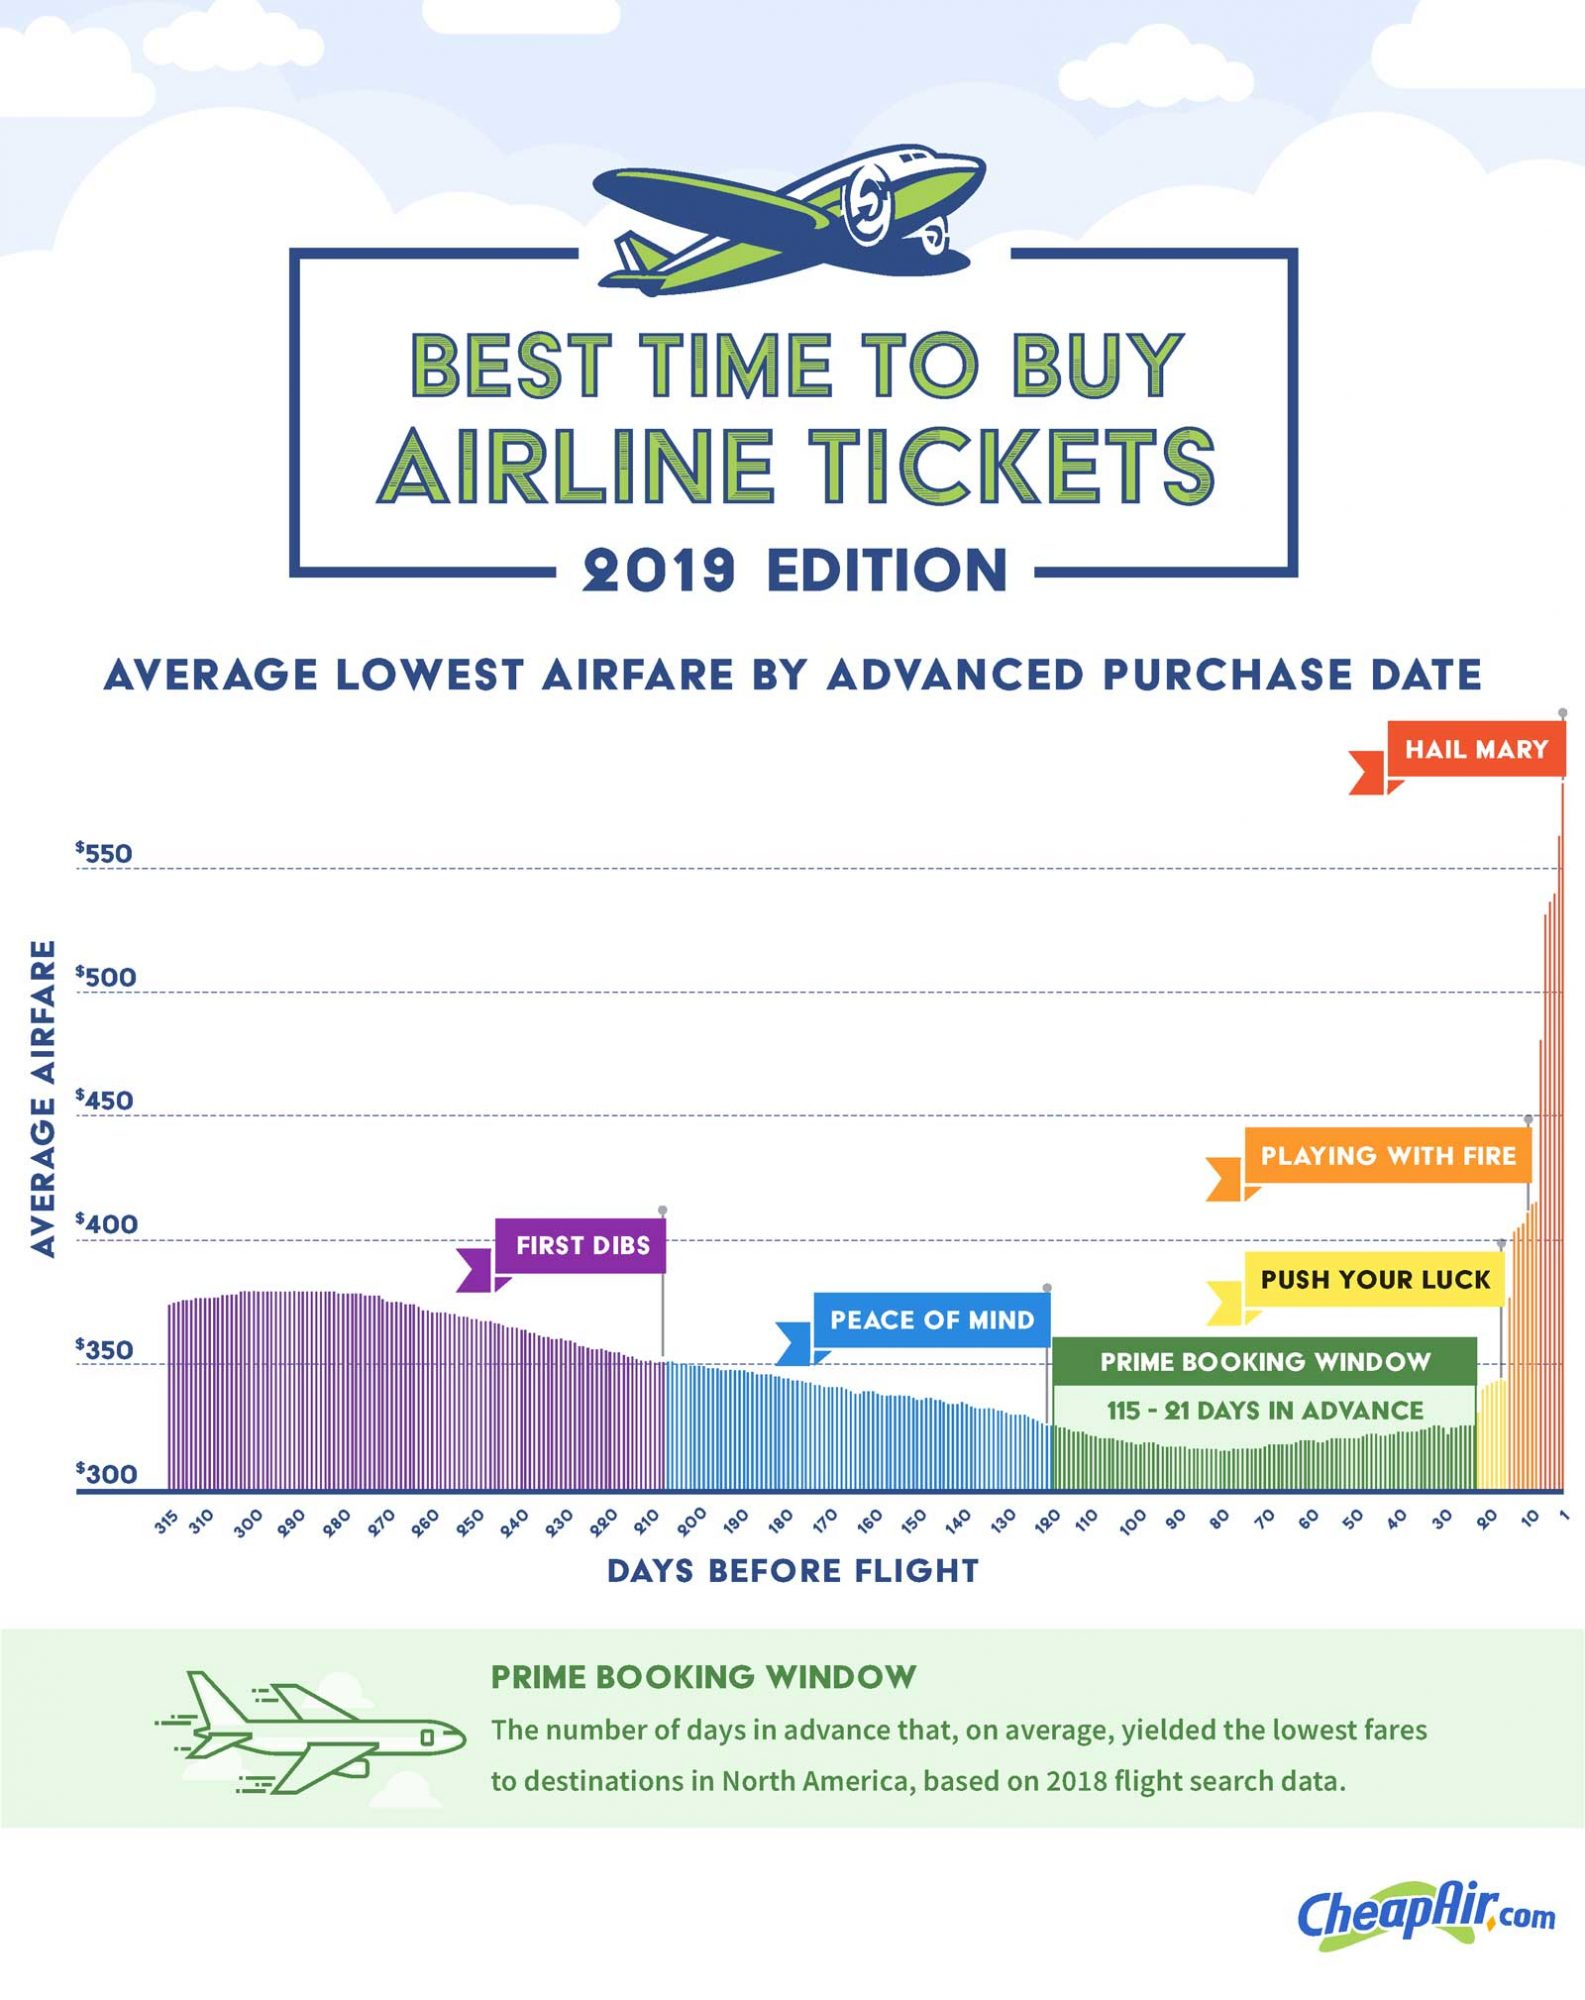 A breakdown of various booking zones for flights.